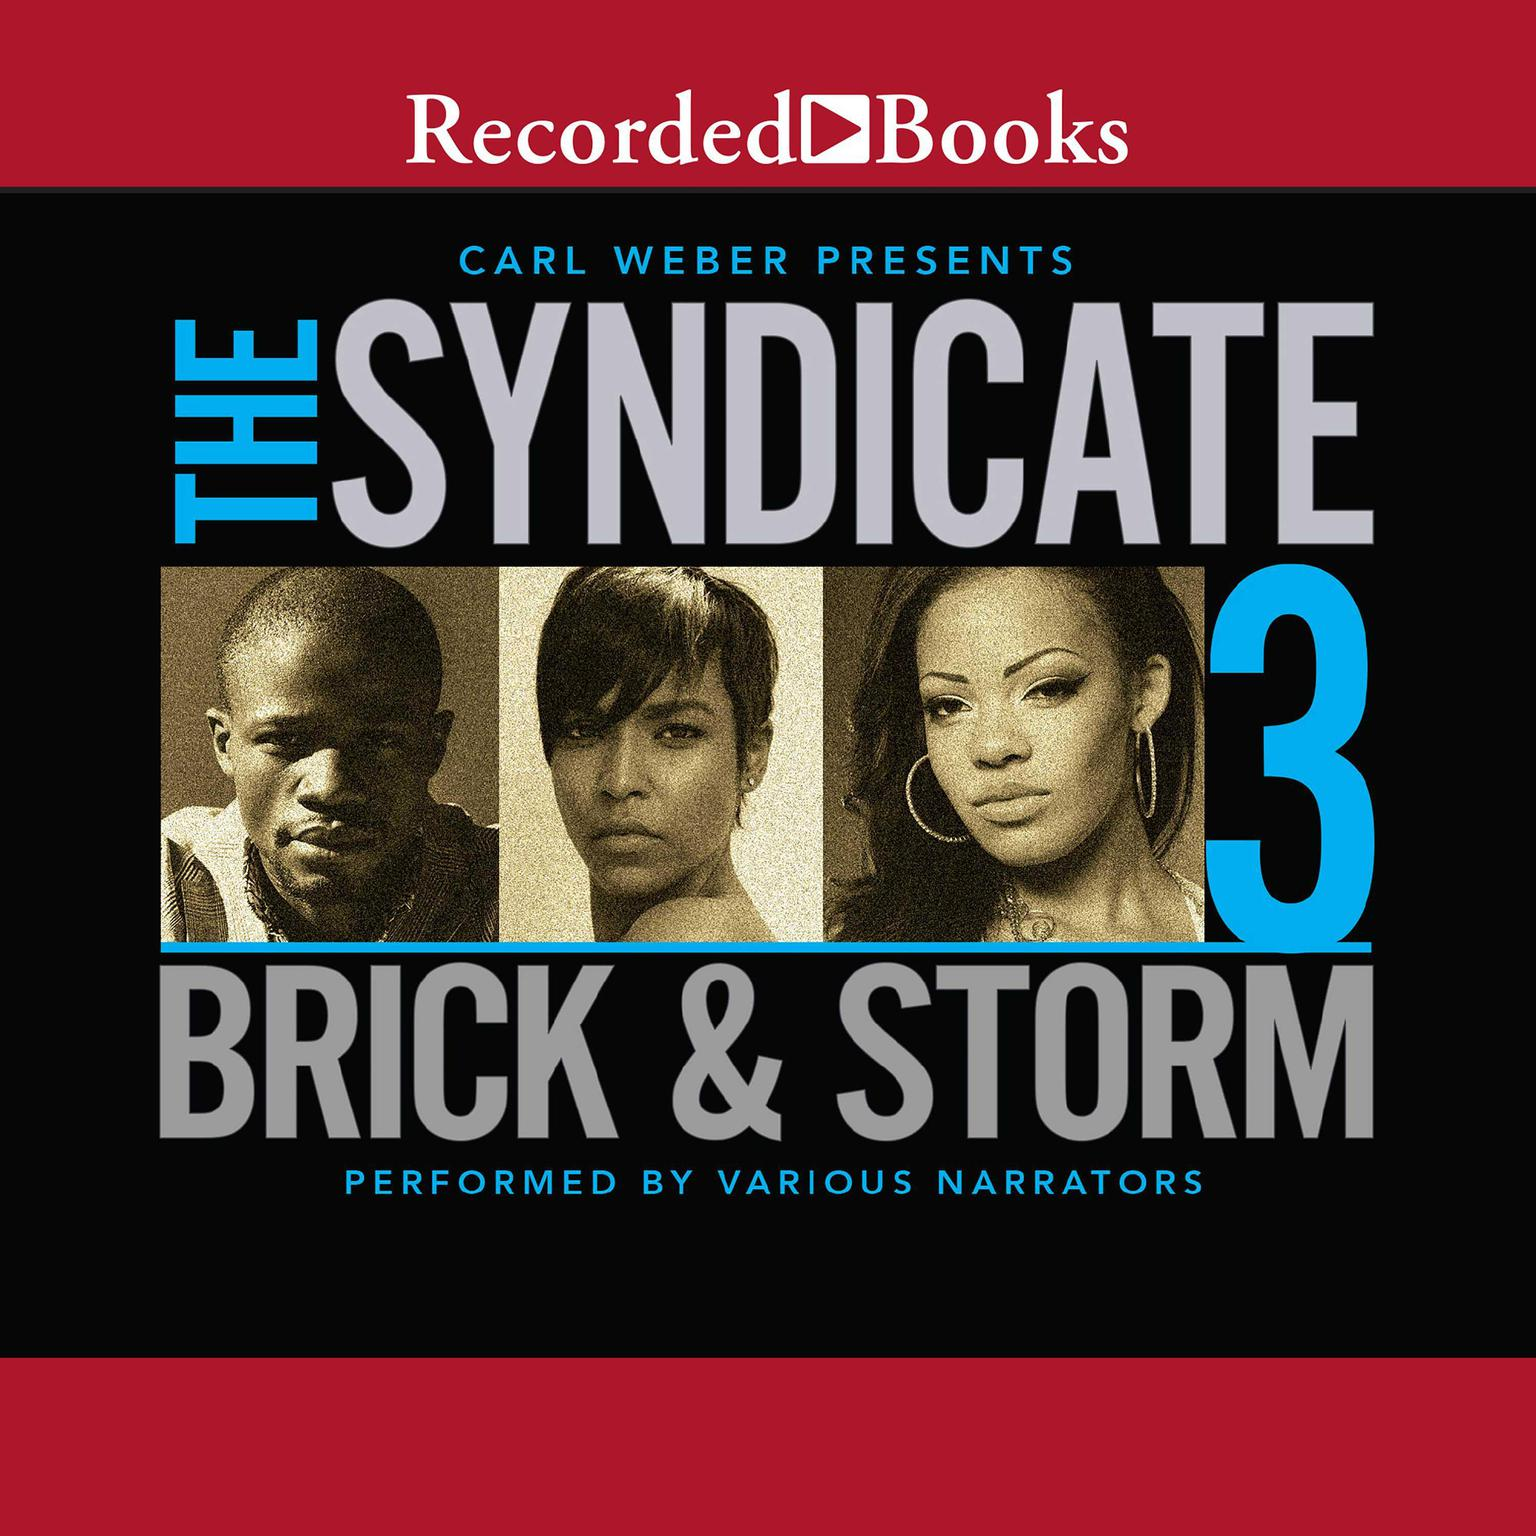 The Syndicate 3: Carl Weber Presents Audiobook, by Brick